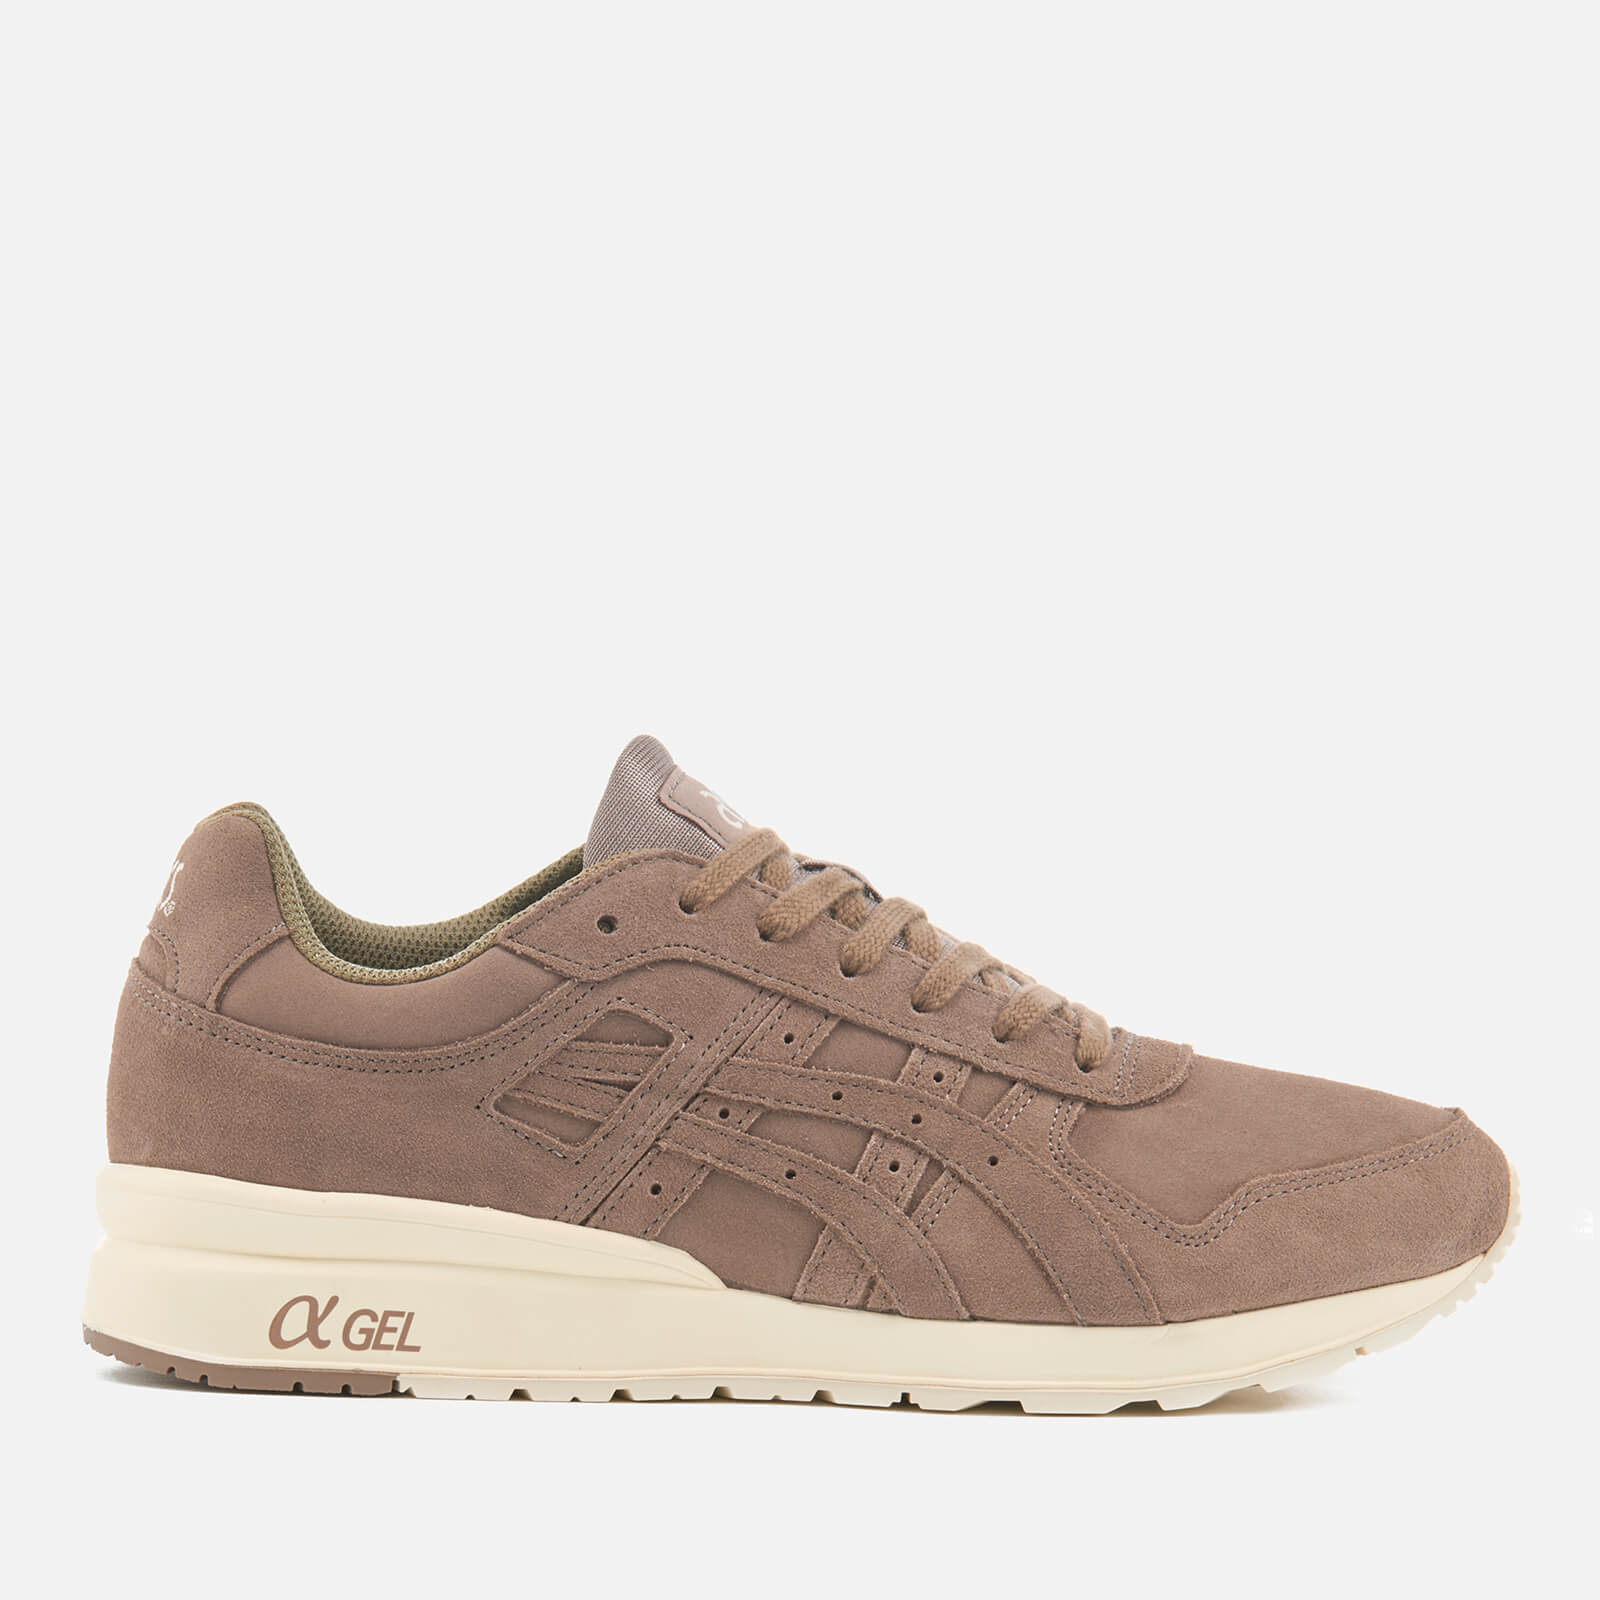 low priced 9c1b3 0737b Asics Lifestyle Men's Gt-II Trainers - Taupe Grey